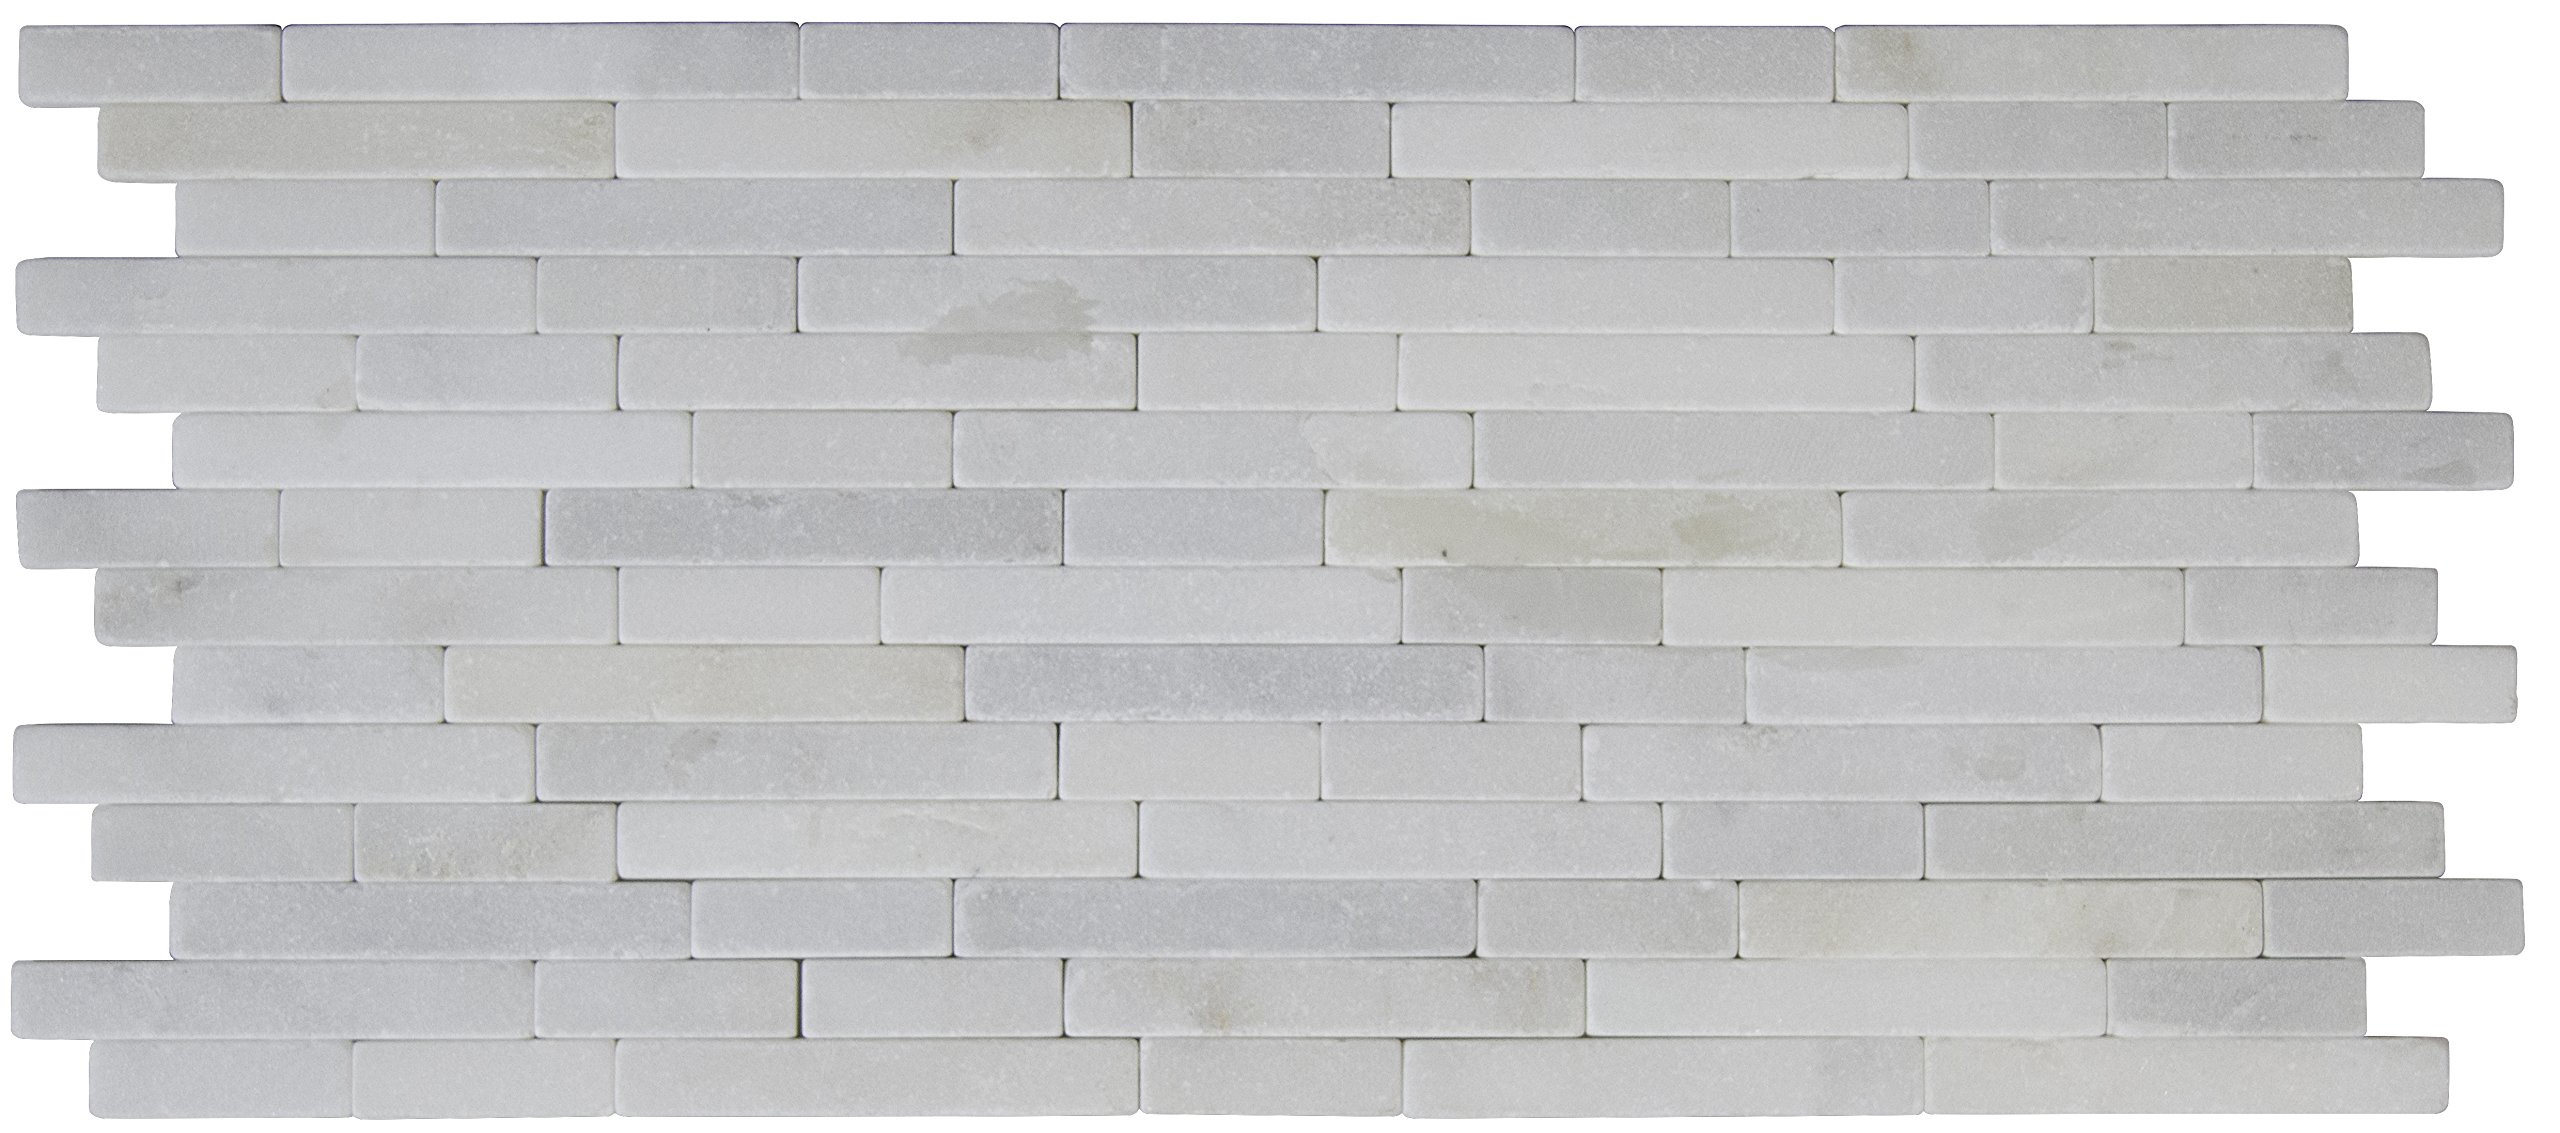 M S International Arabescato Carrara Veneer 8 In. X 18 In. X 10 mm Tumbled Marble Mesh-Mounted Mosaic Tile, (10 sq. ft., 10 pieces per case)